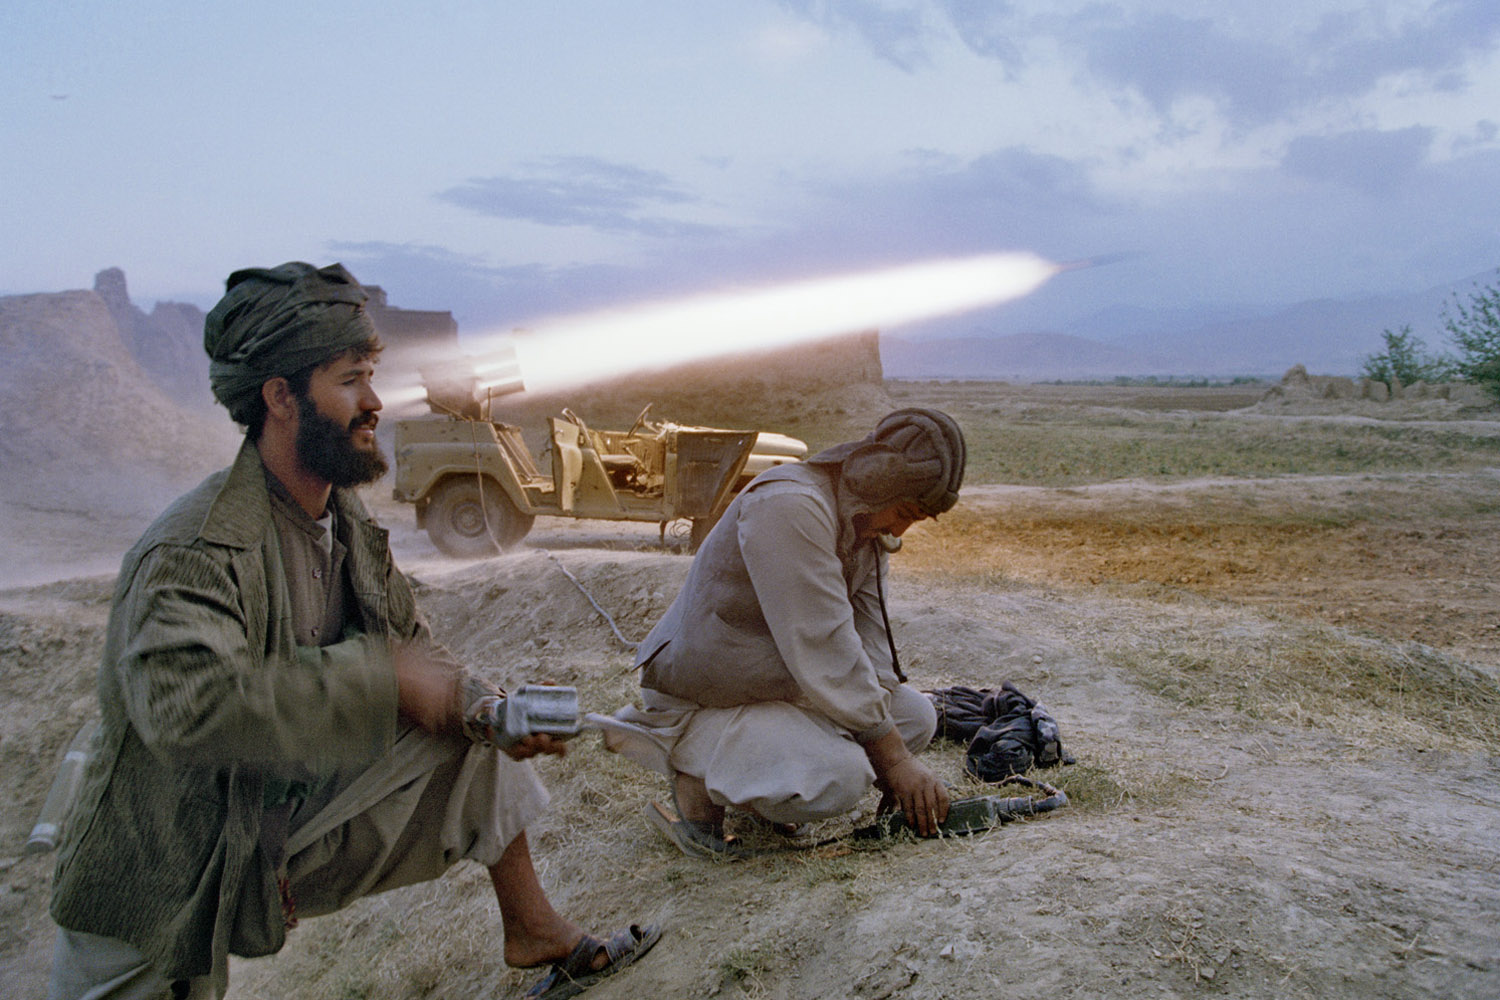 Taliban soldiers fire a rocket at retreating forces of Ahmed Shah Massoud, north of Kabul. September, 1996